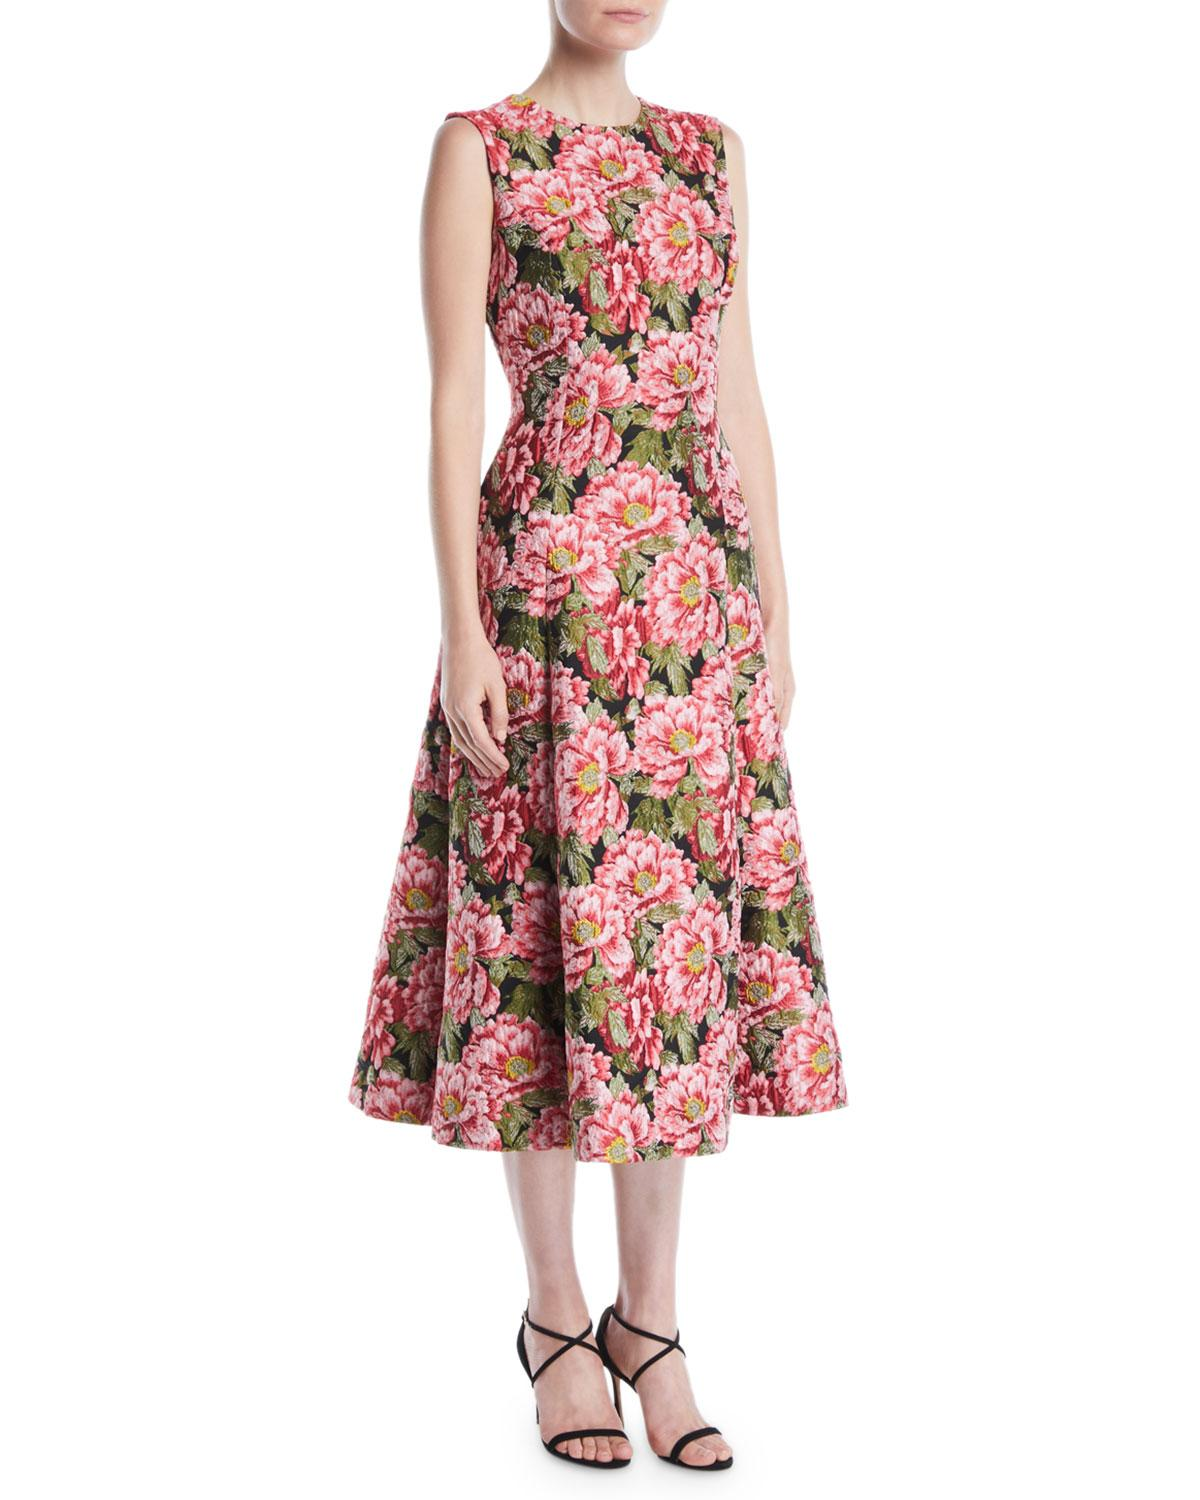 94224f3bdfef1 Escada Sleeveless Floral-Jacquard Fit-And-Flare Midi Day Dress In Red  Pattern